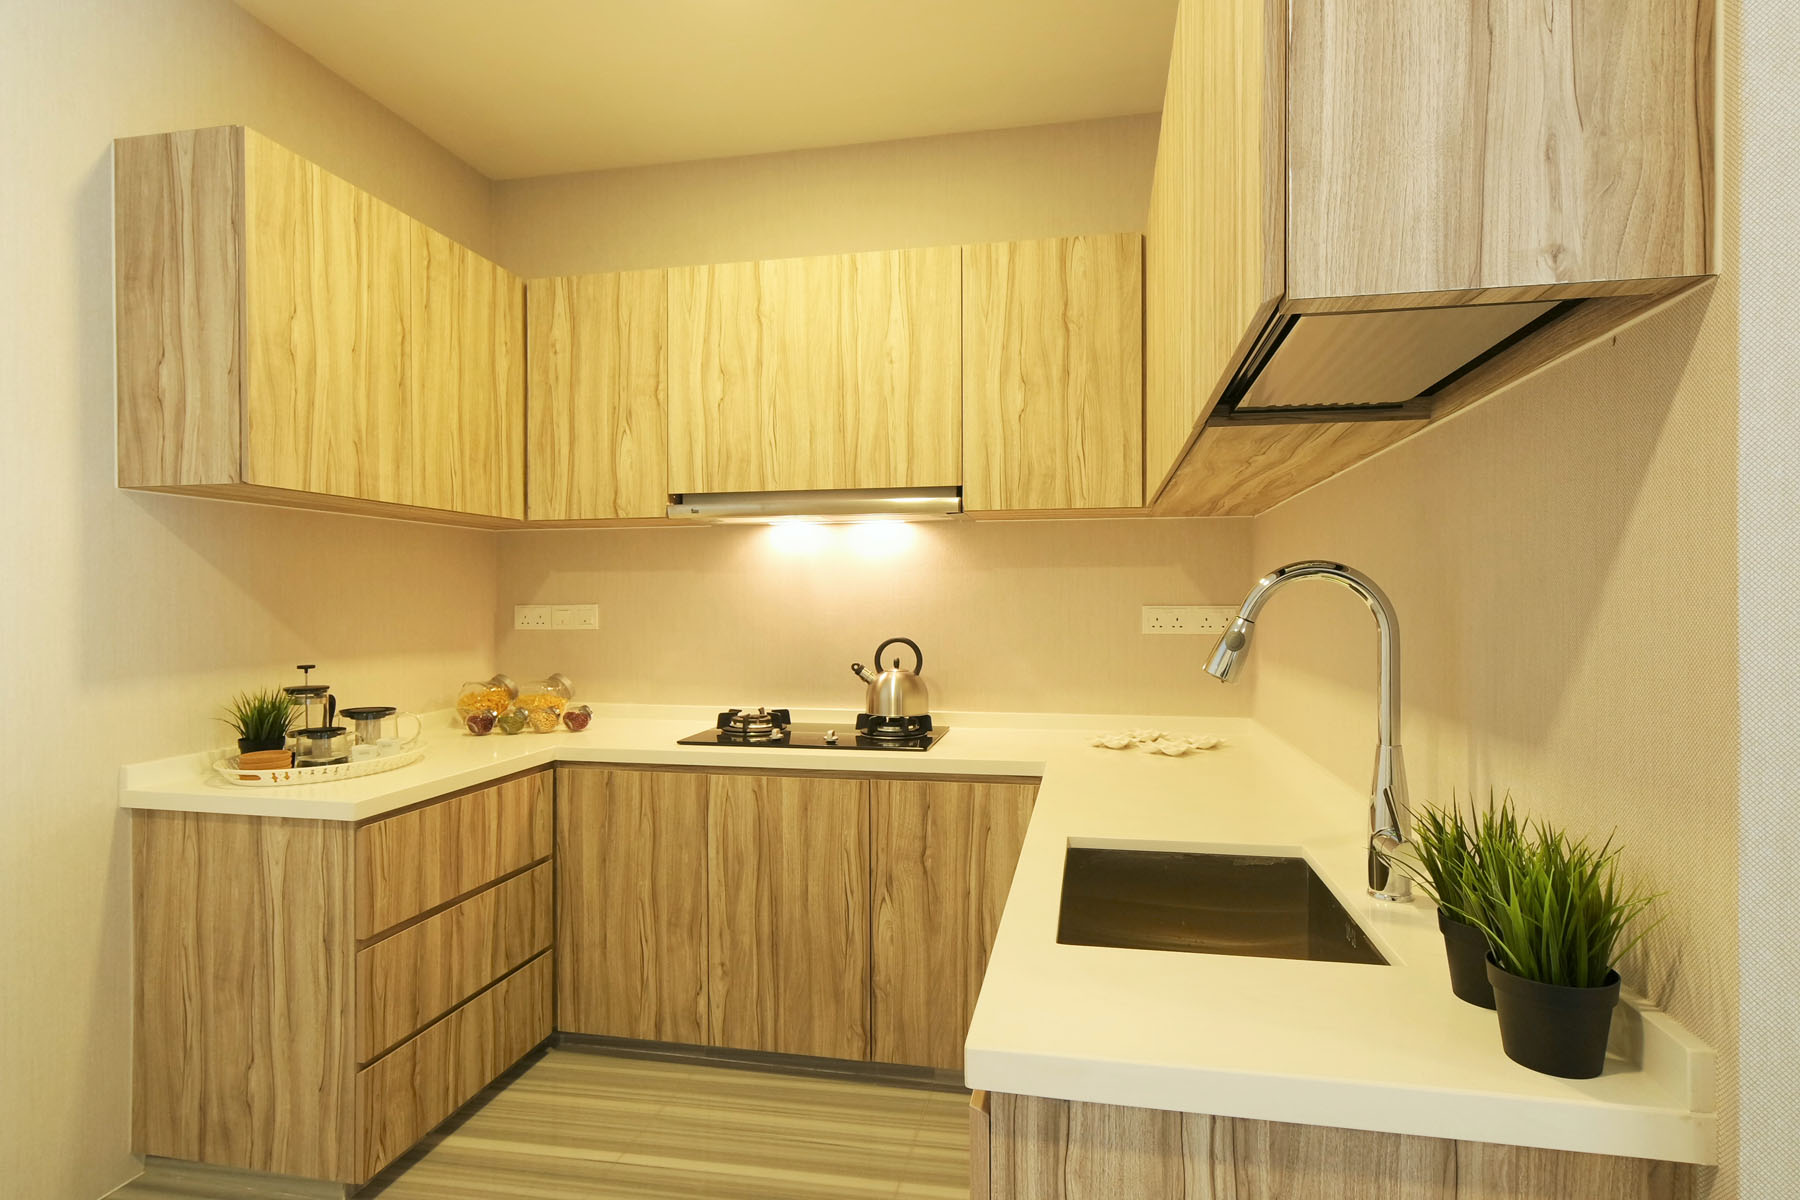 Kitchen designers in Singapore